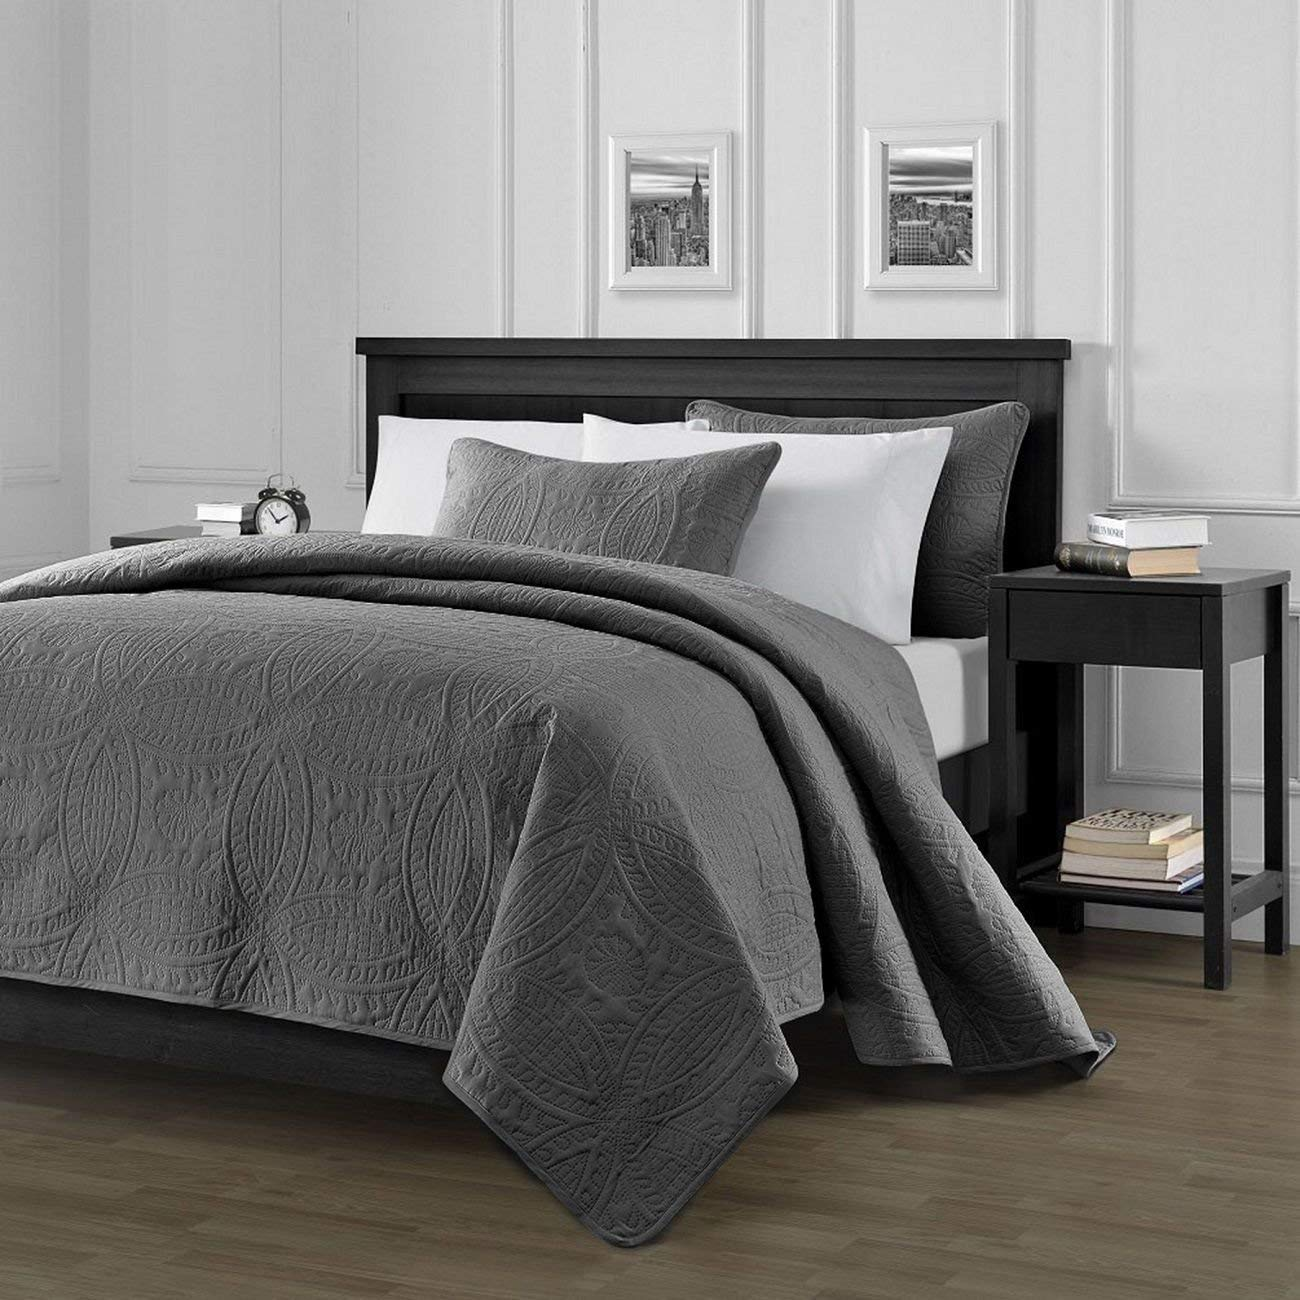 Chezmoi Collection Austin 3-Piece Oversized Bedspread Coverlet Set (King, Charcoal